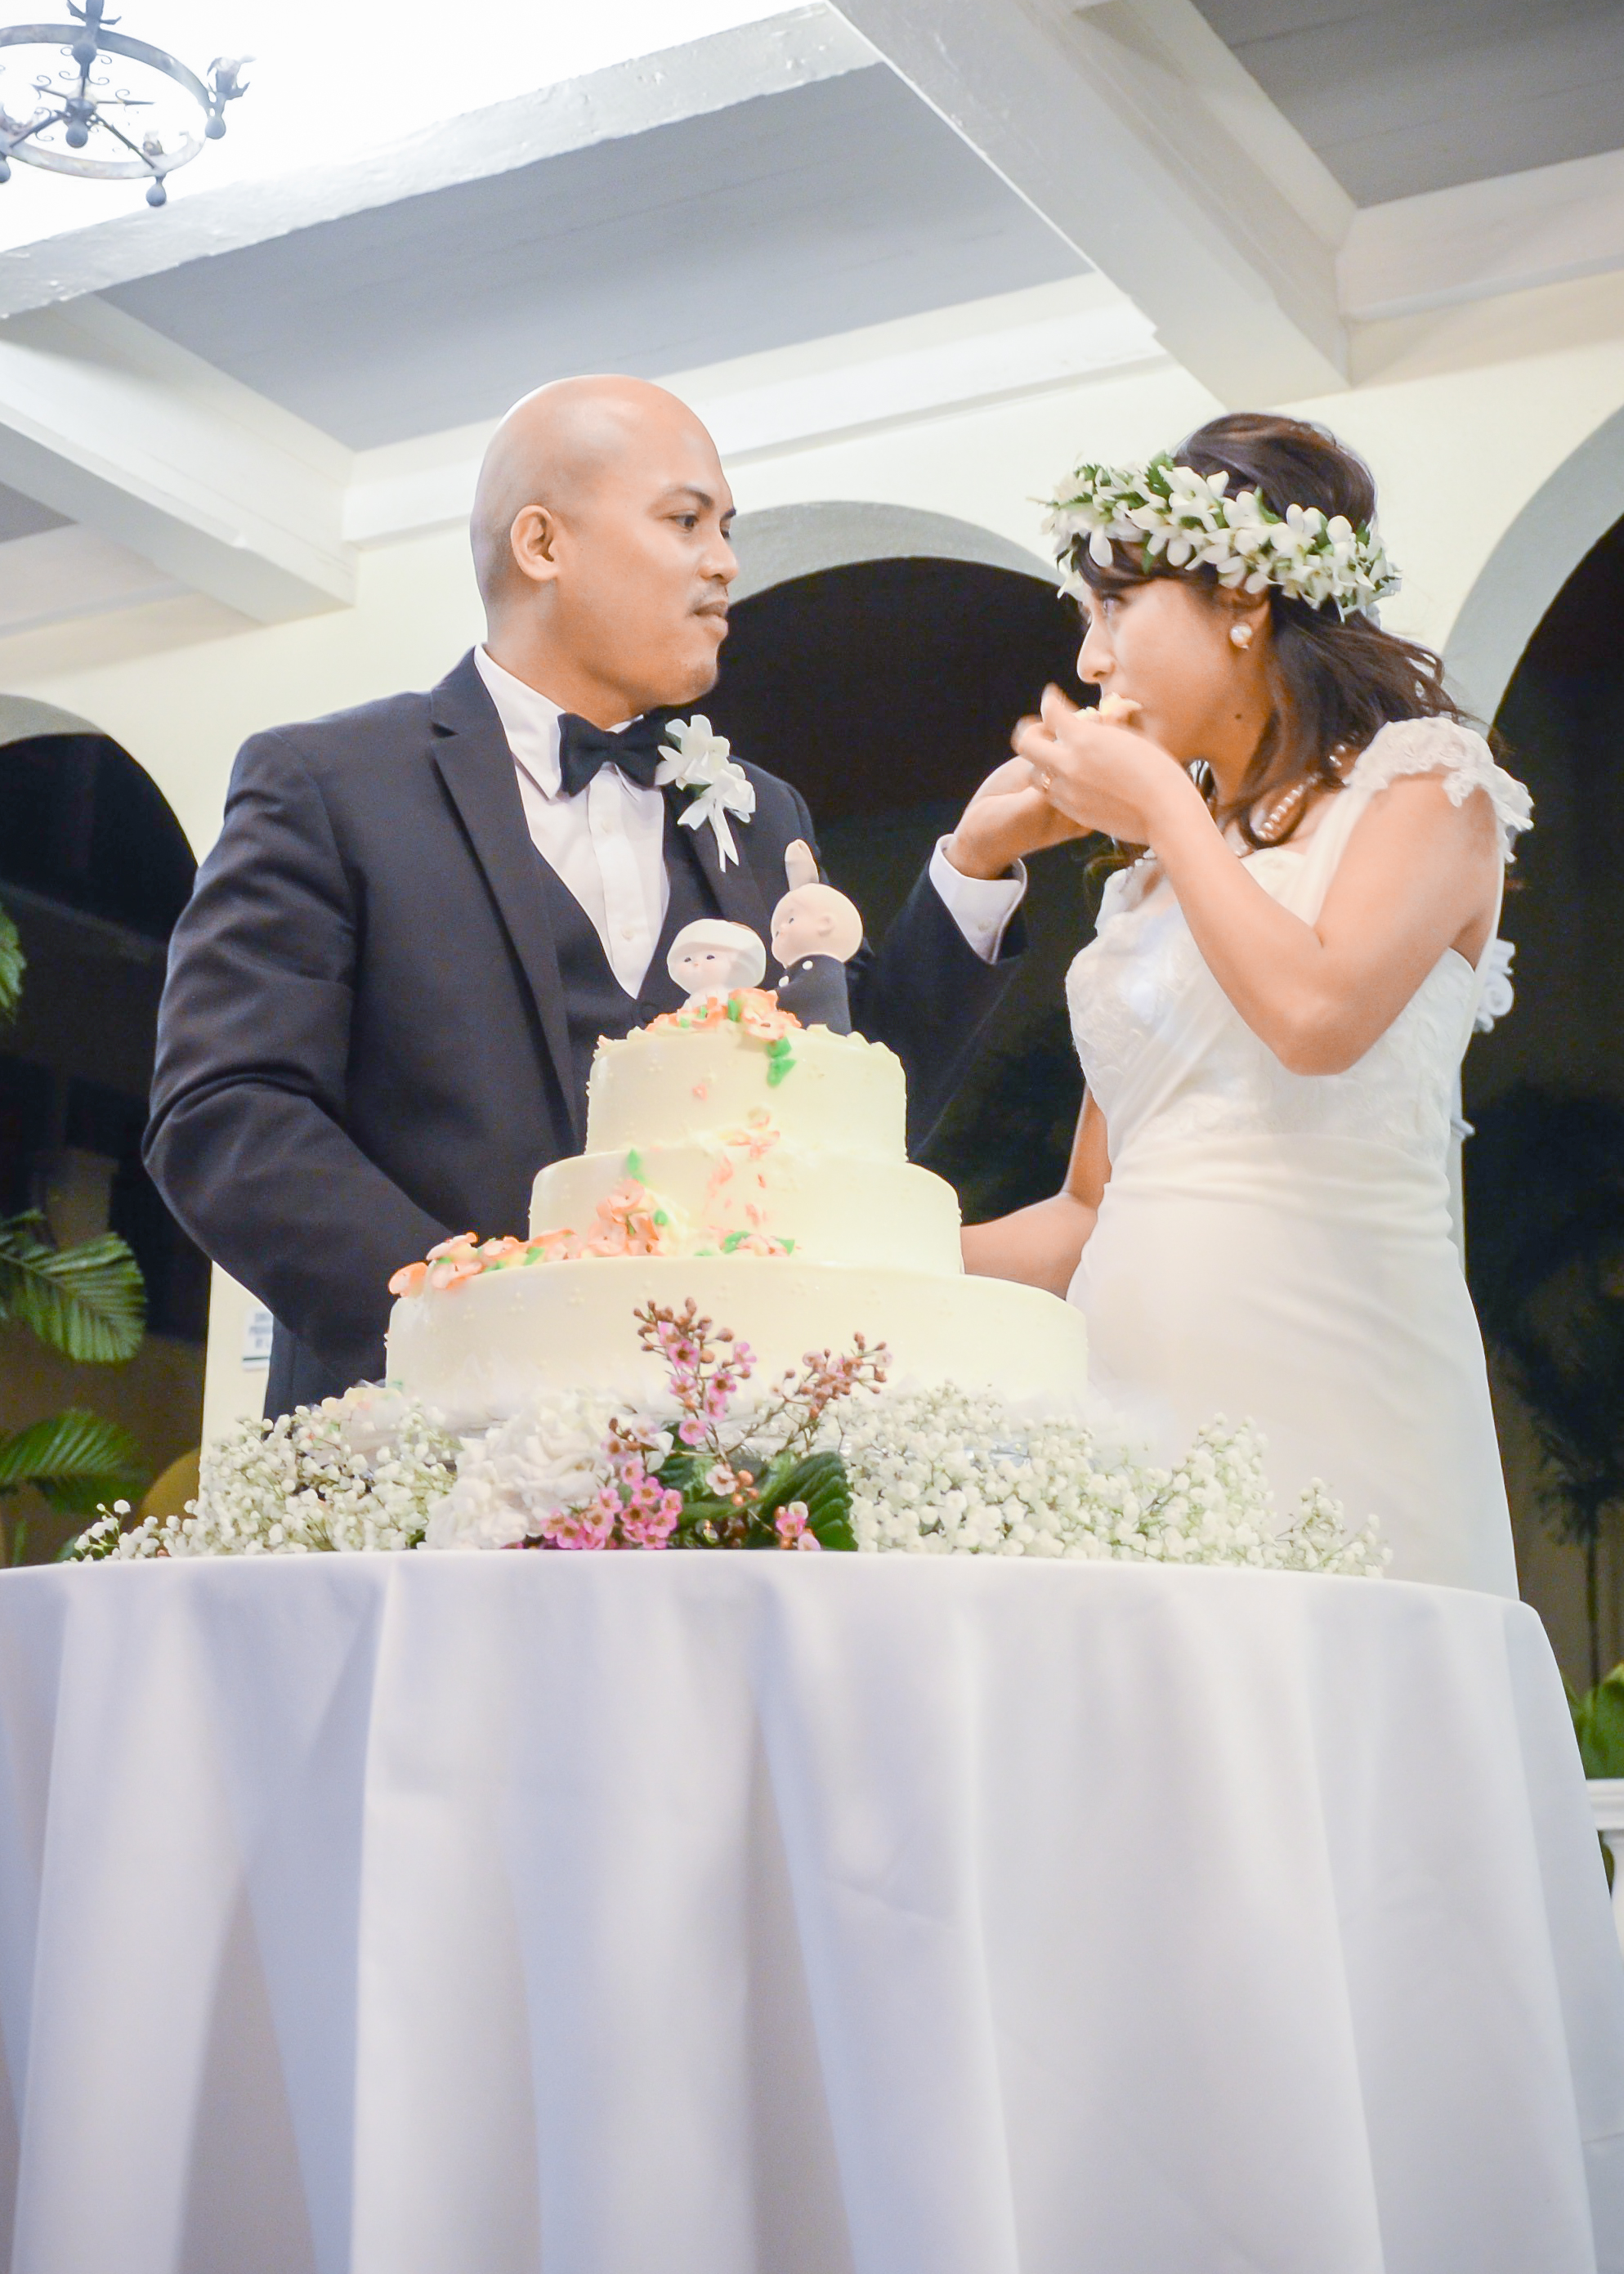 Wedding Cake Ceremony